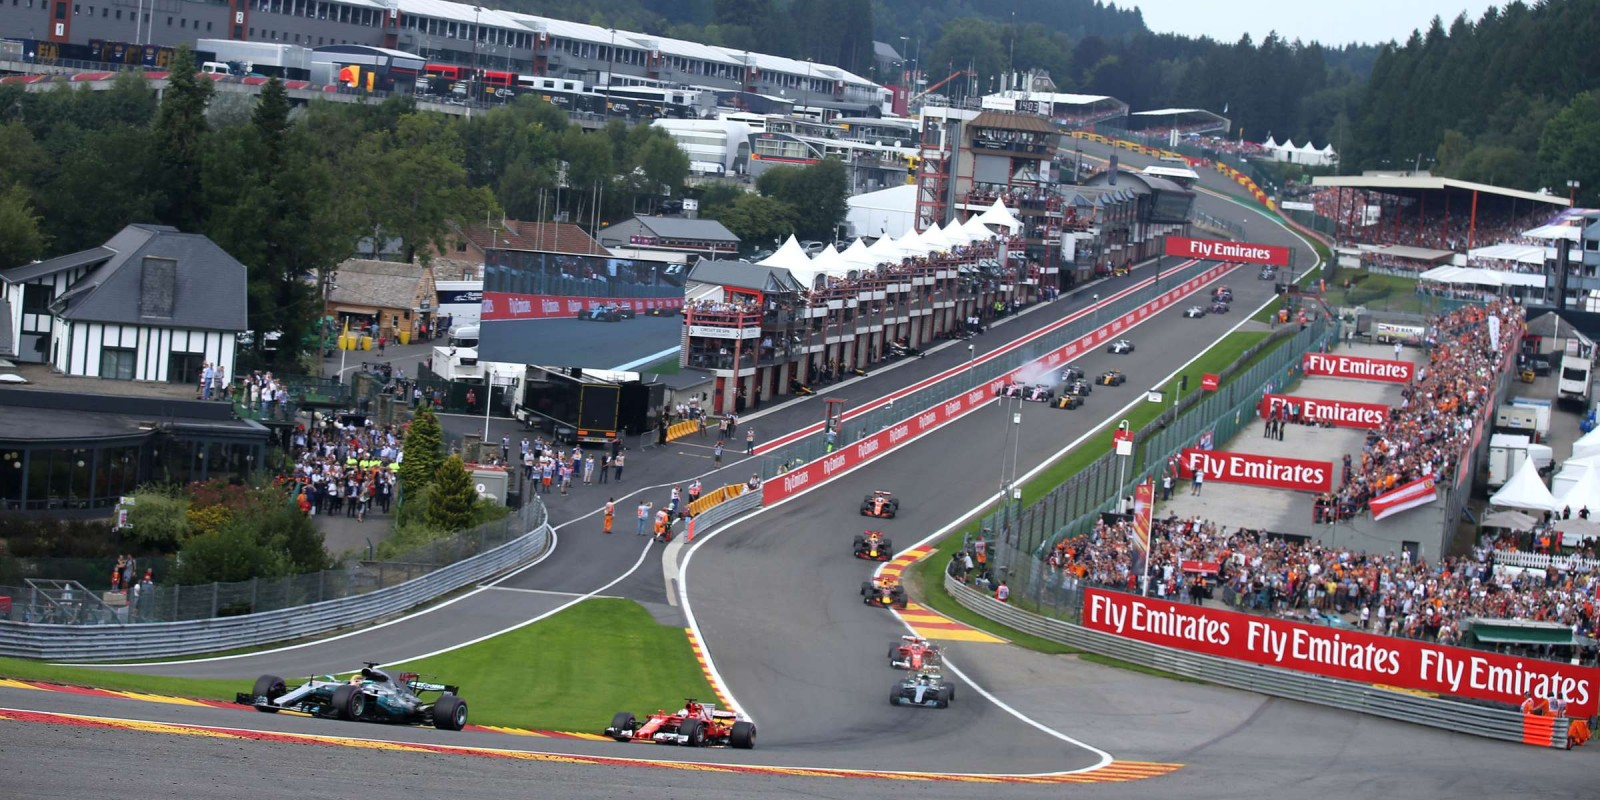 Qualifying and Race images from the 2017 Belgian Grand Prix